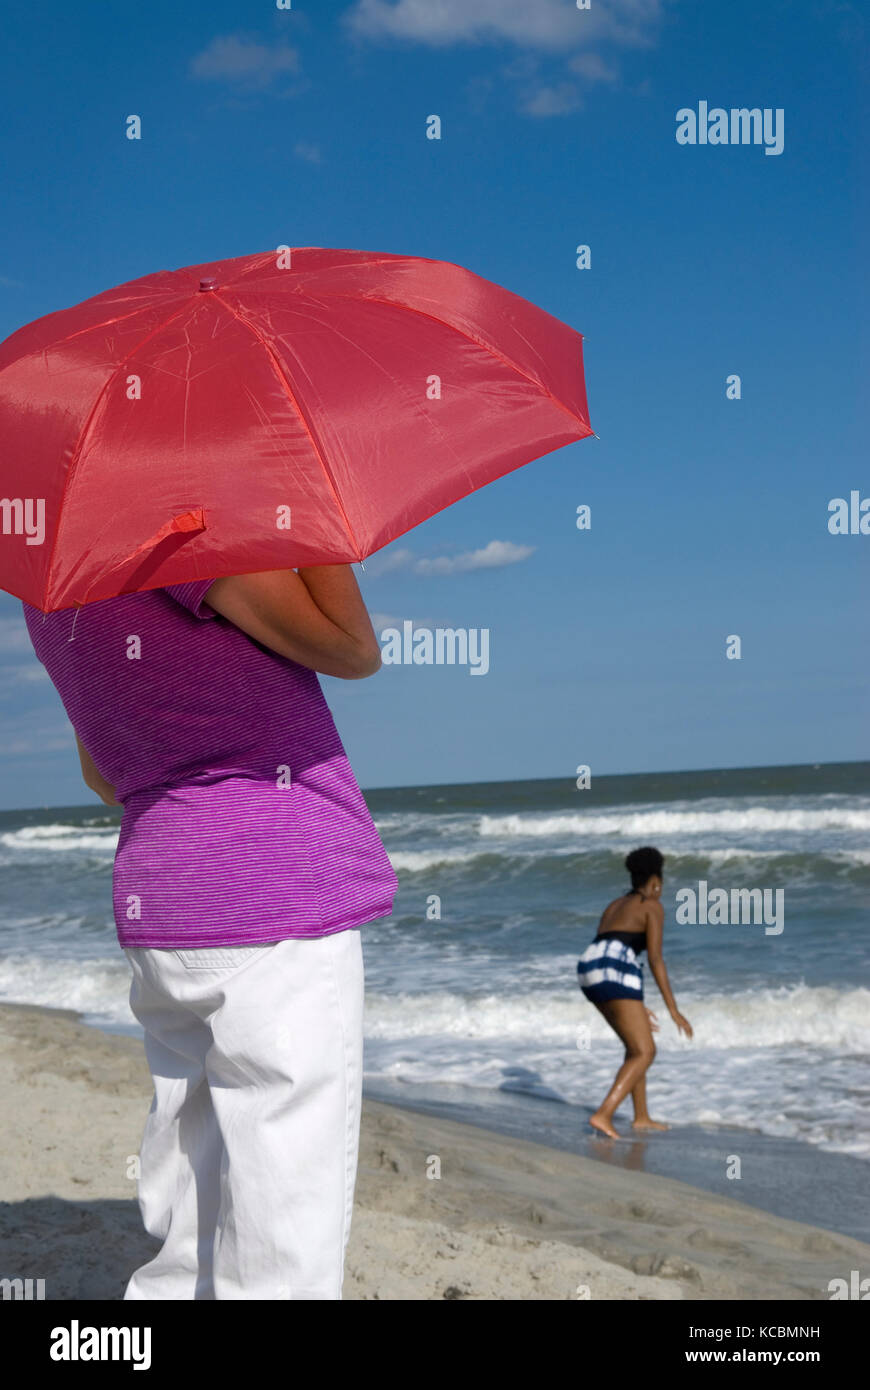 Woman holding red umbrella while viewing the ocean Myrtle Beach SC, USA. Stock Photo